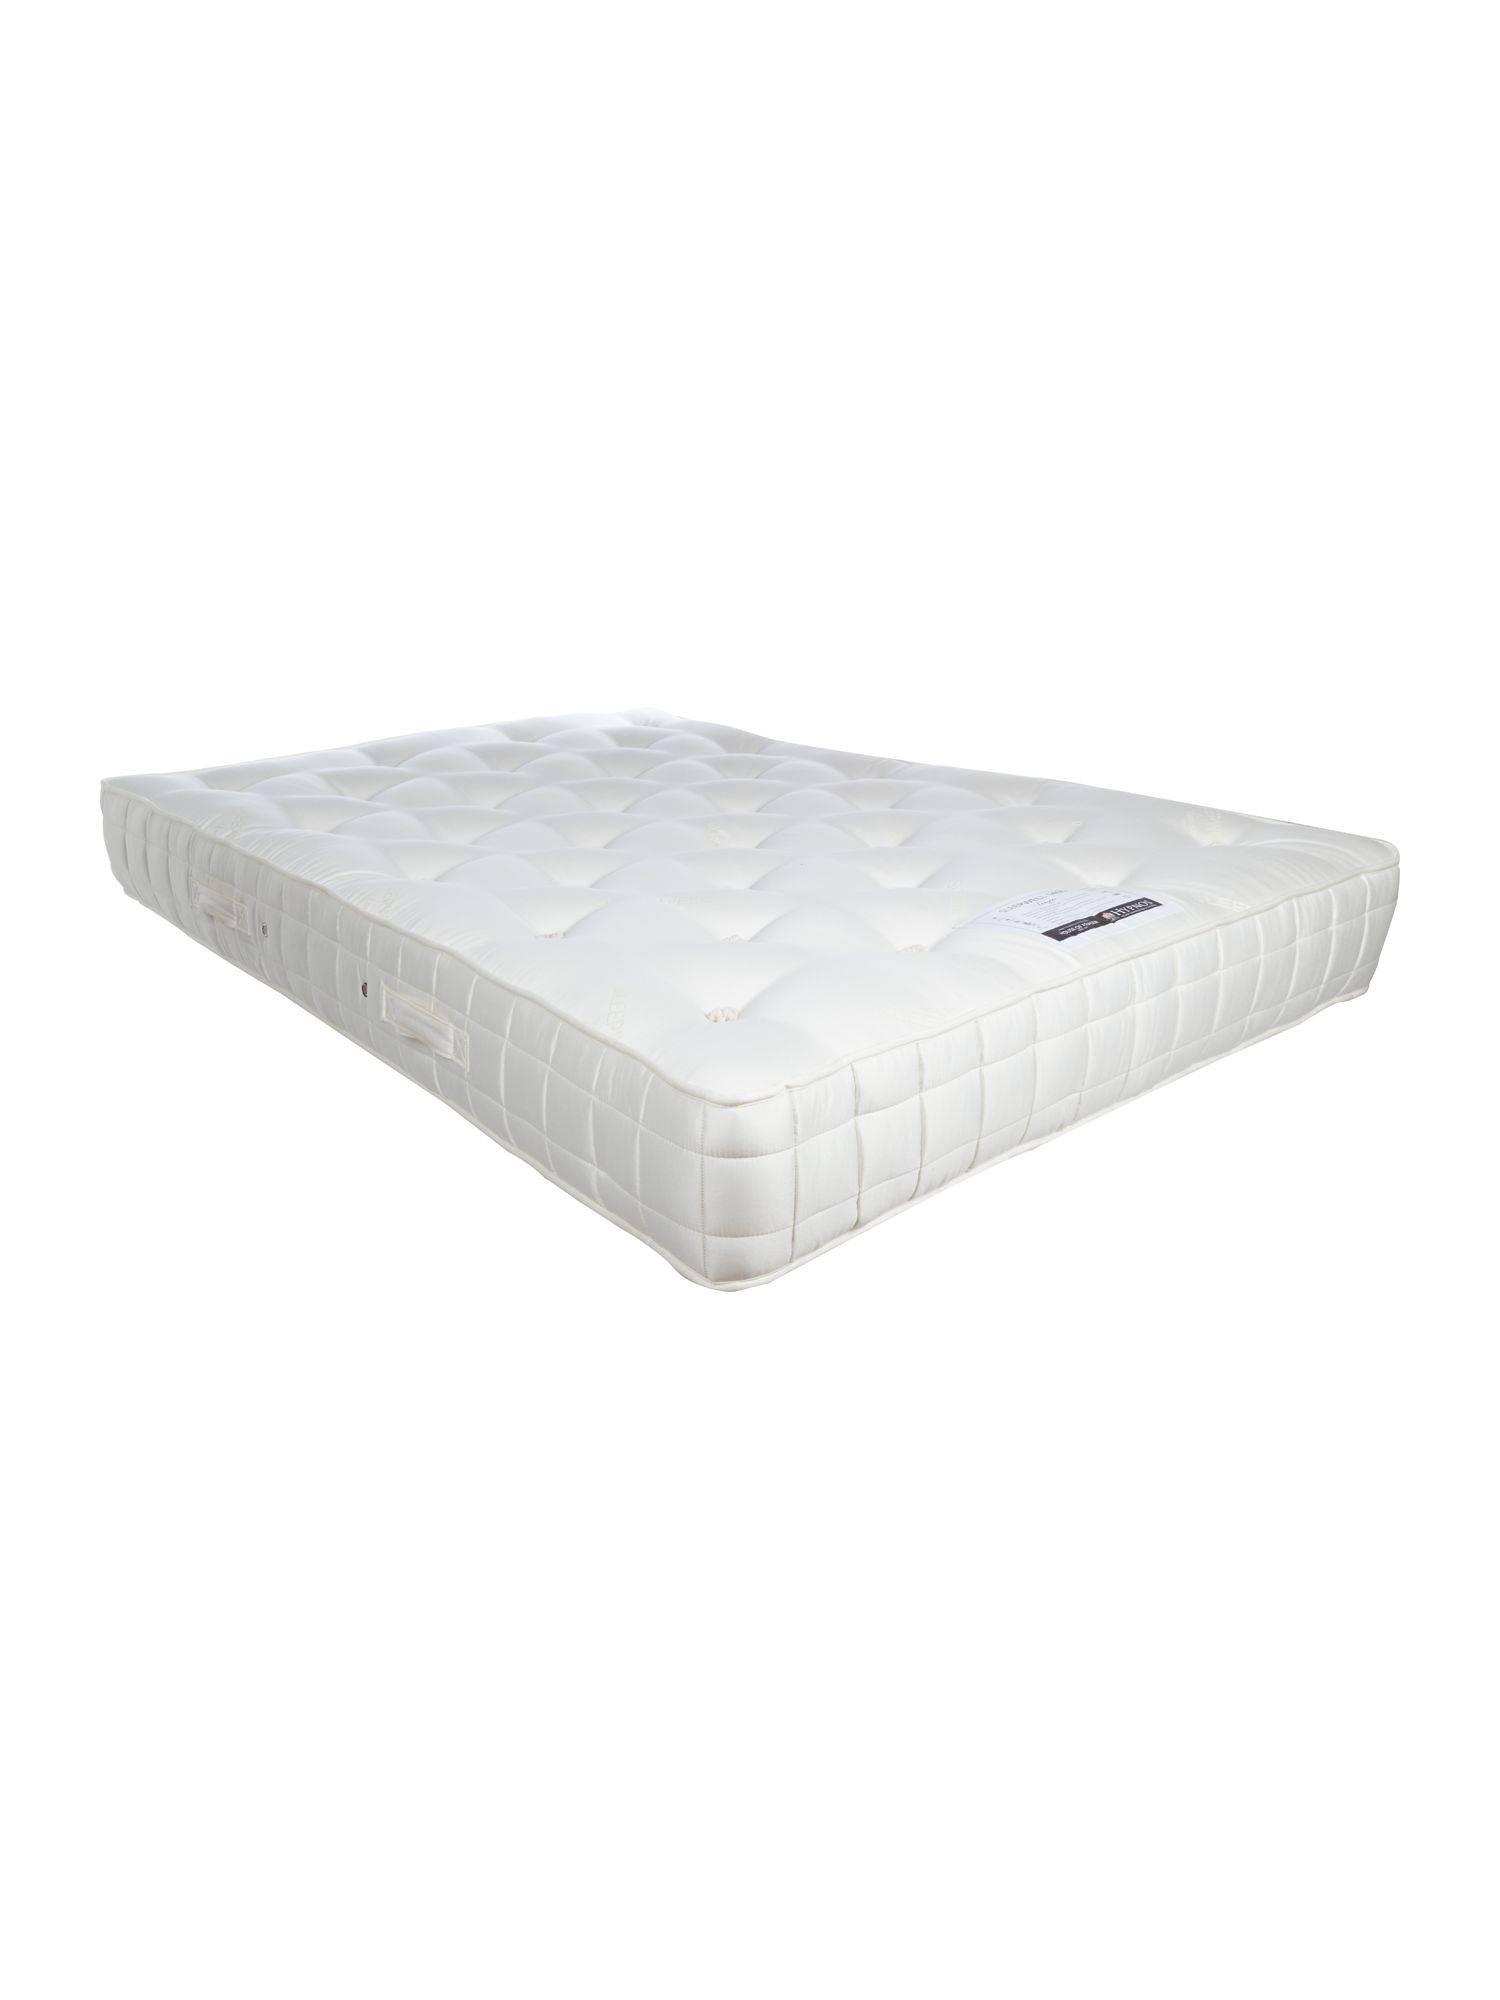 LINEA Home by Hypnos Sleepwell 1400 double mattress medium tension